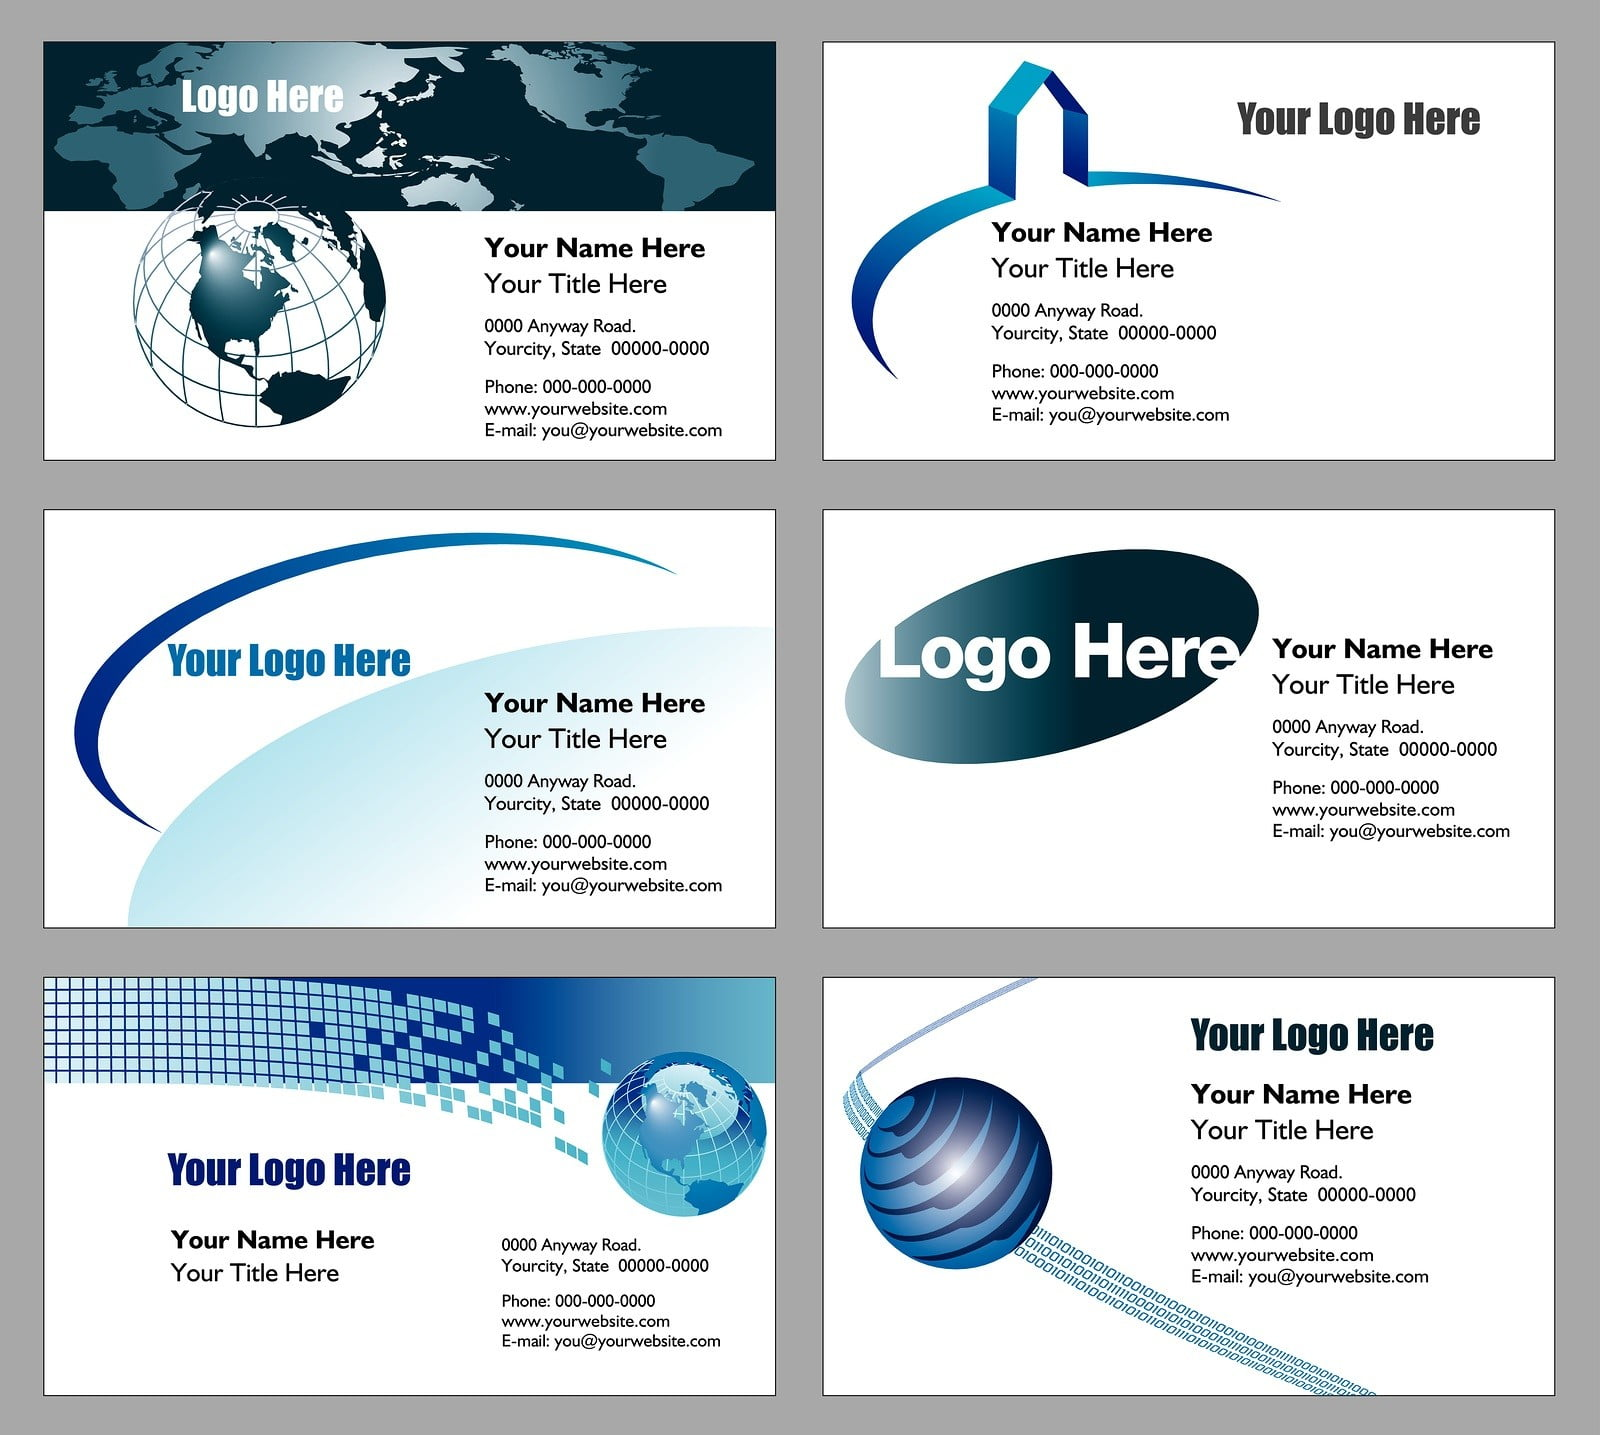 bigstock business cards 3042018 - Inexpensive Business Cards